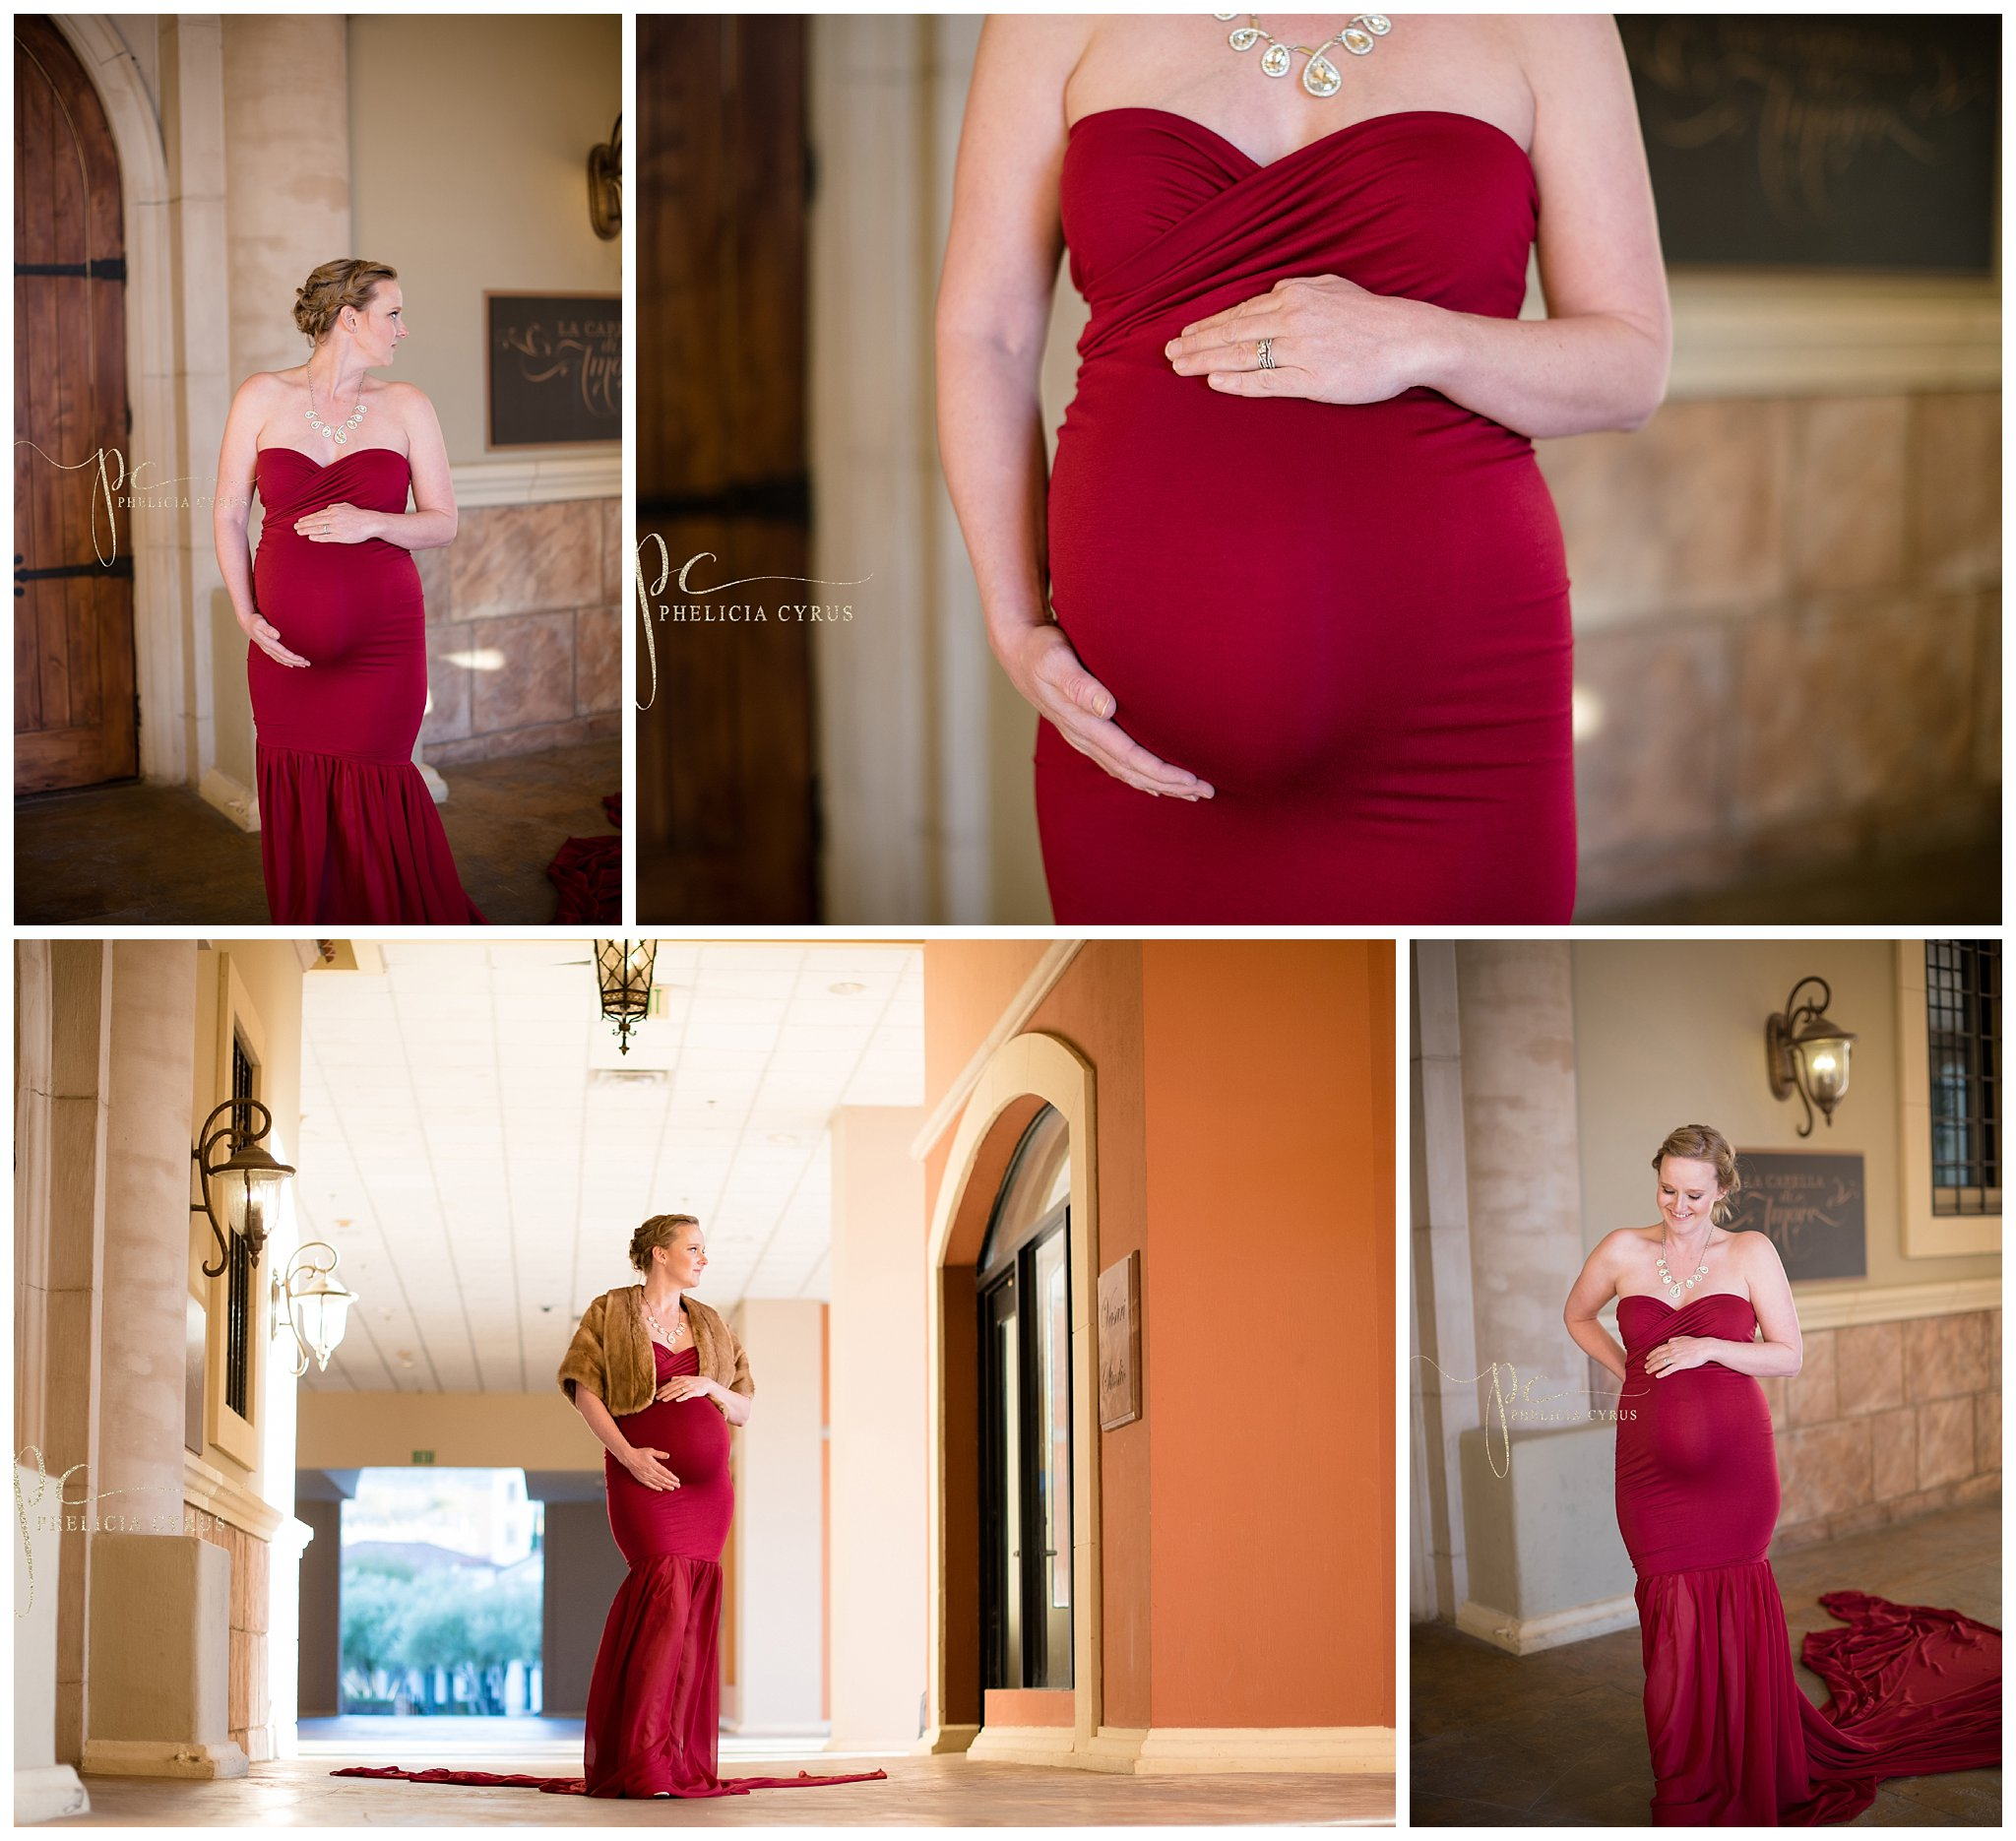 Beautiful-maternity-session-in-red-sew-trendy-gown-at-Lake-Las-Vegas